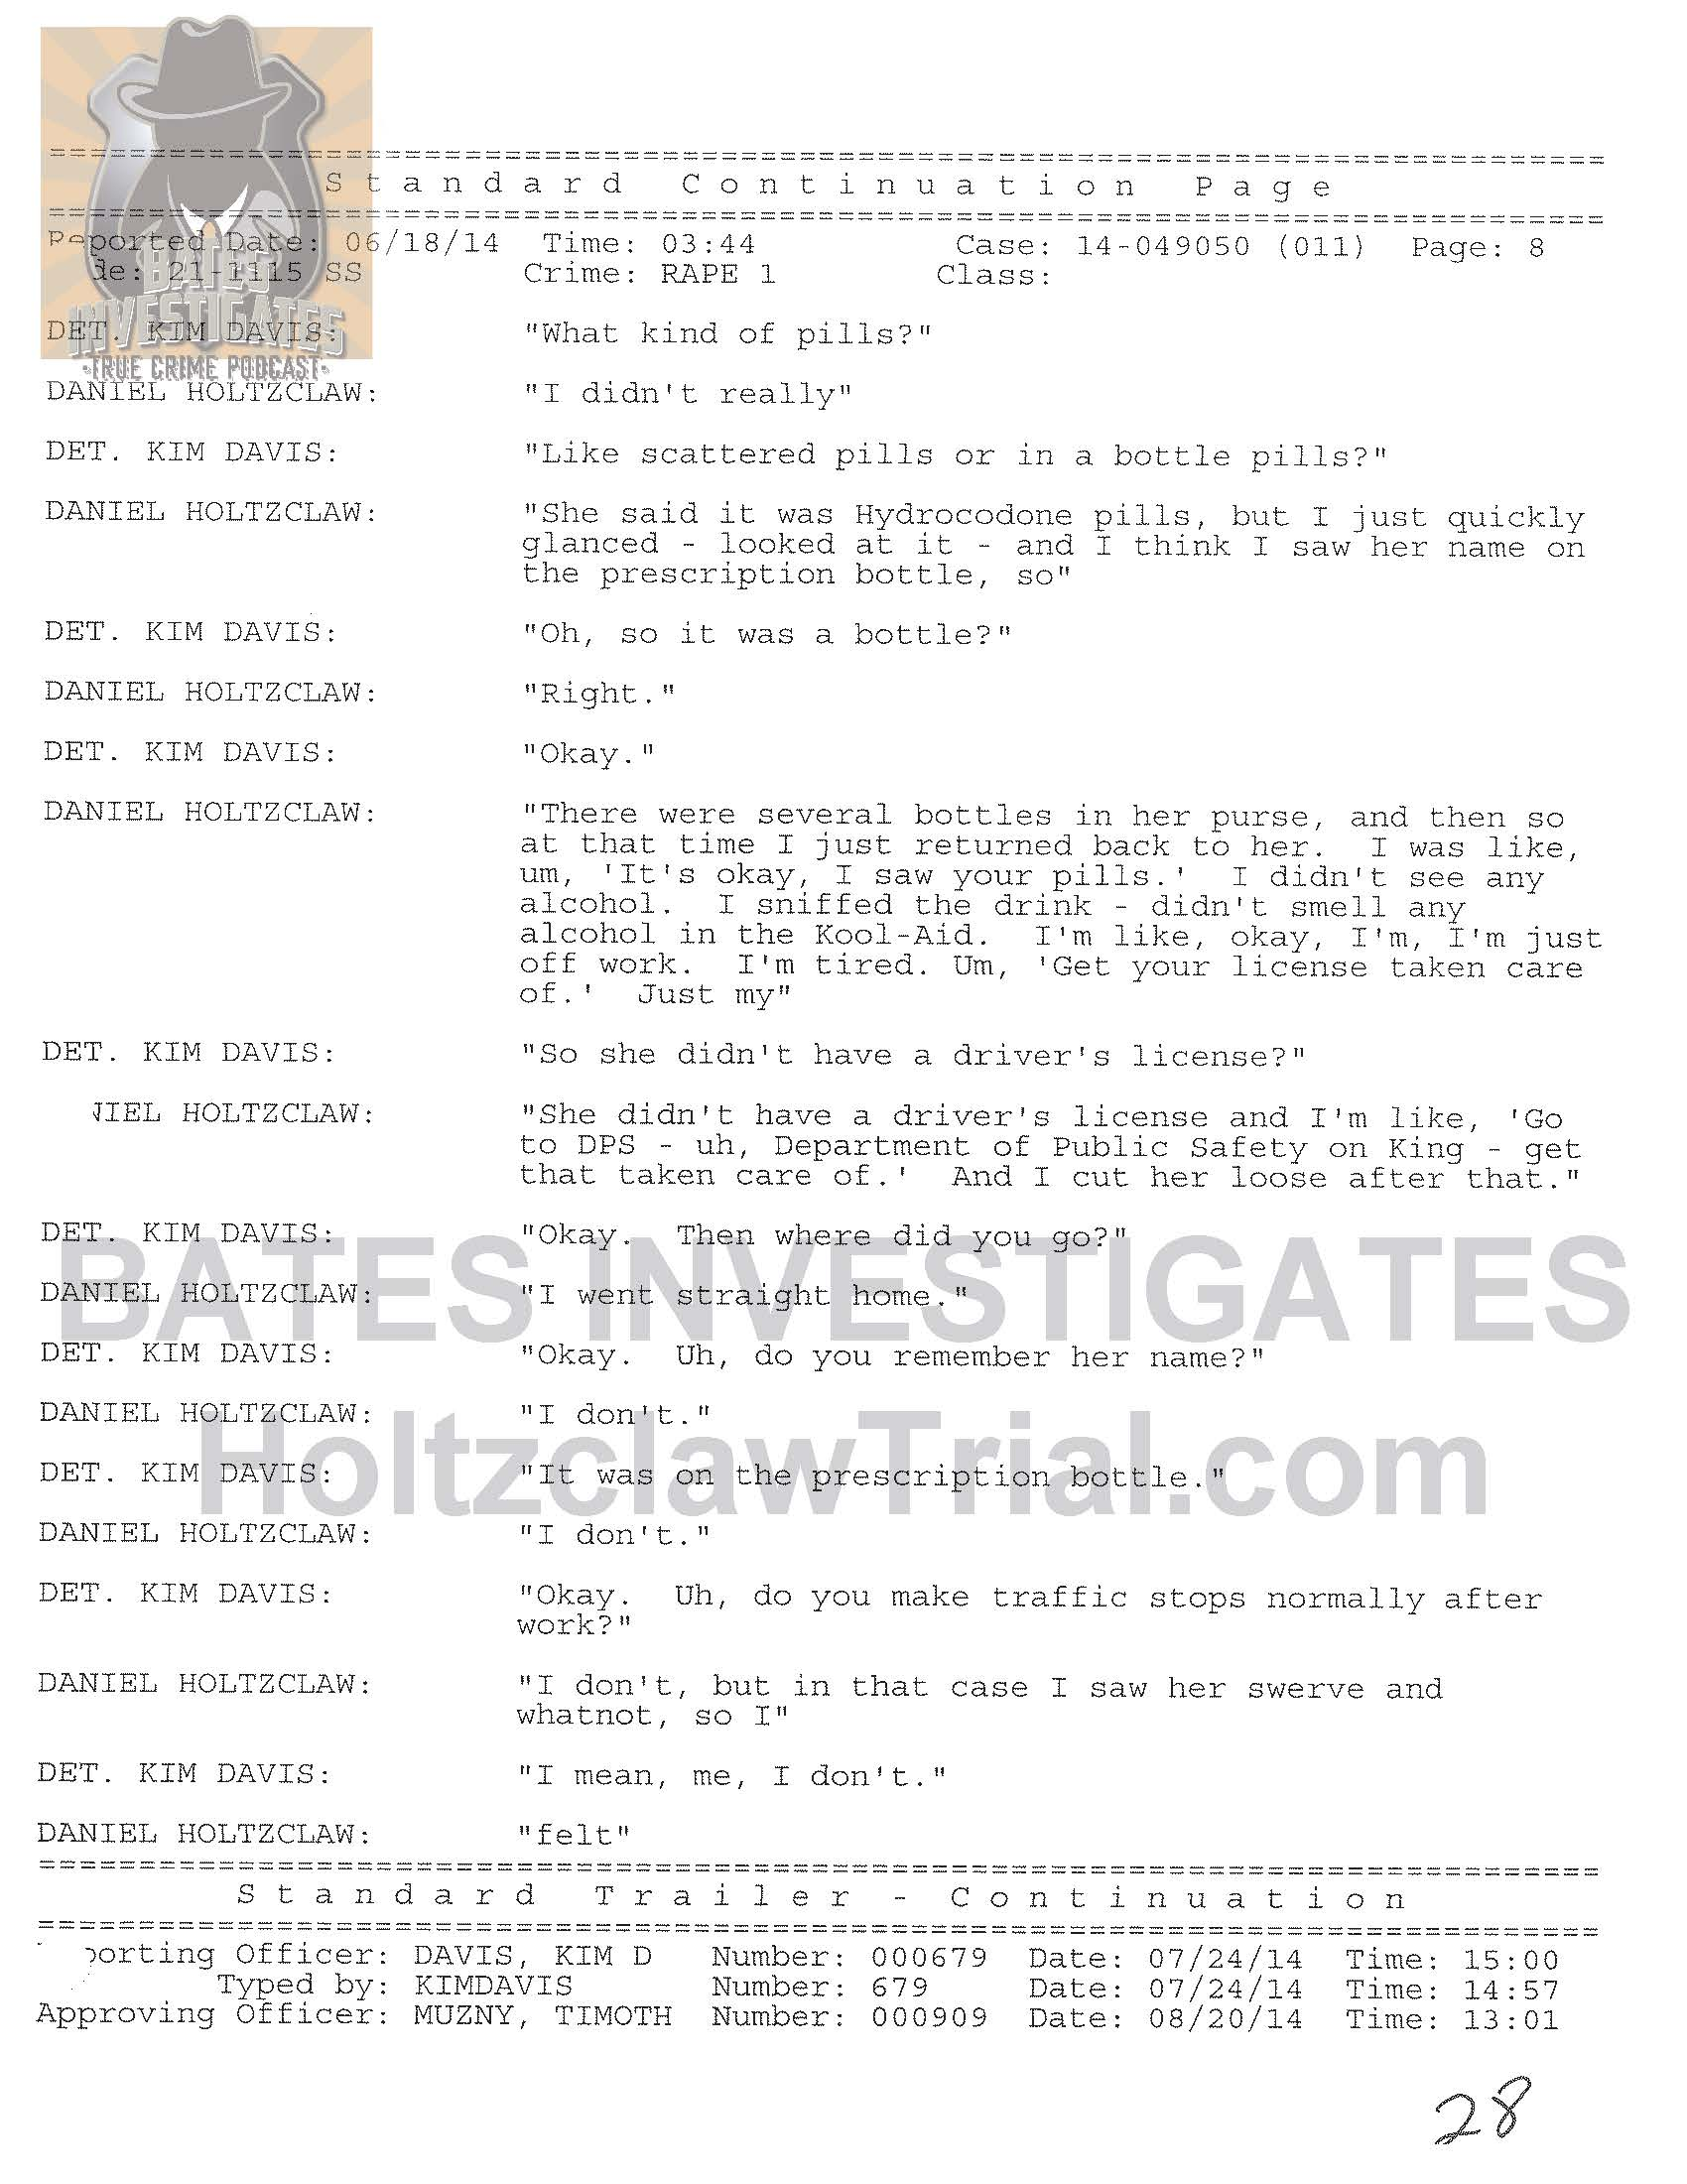 Holtzclaw Interrogation Transcript - Ep02 Redacted_Page_08.jpg